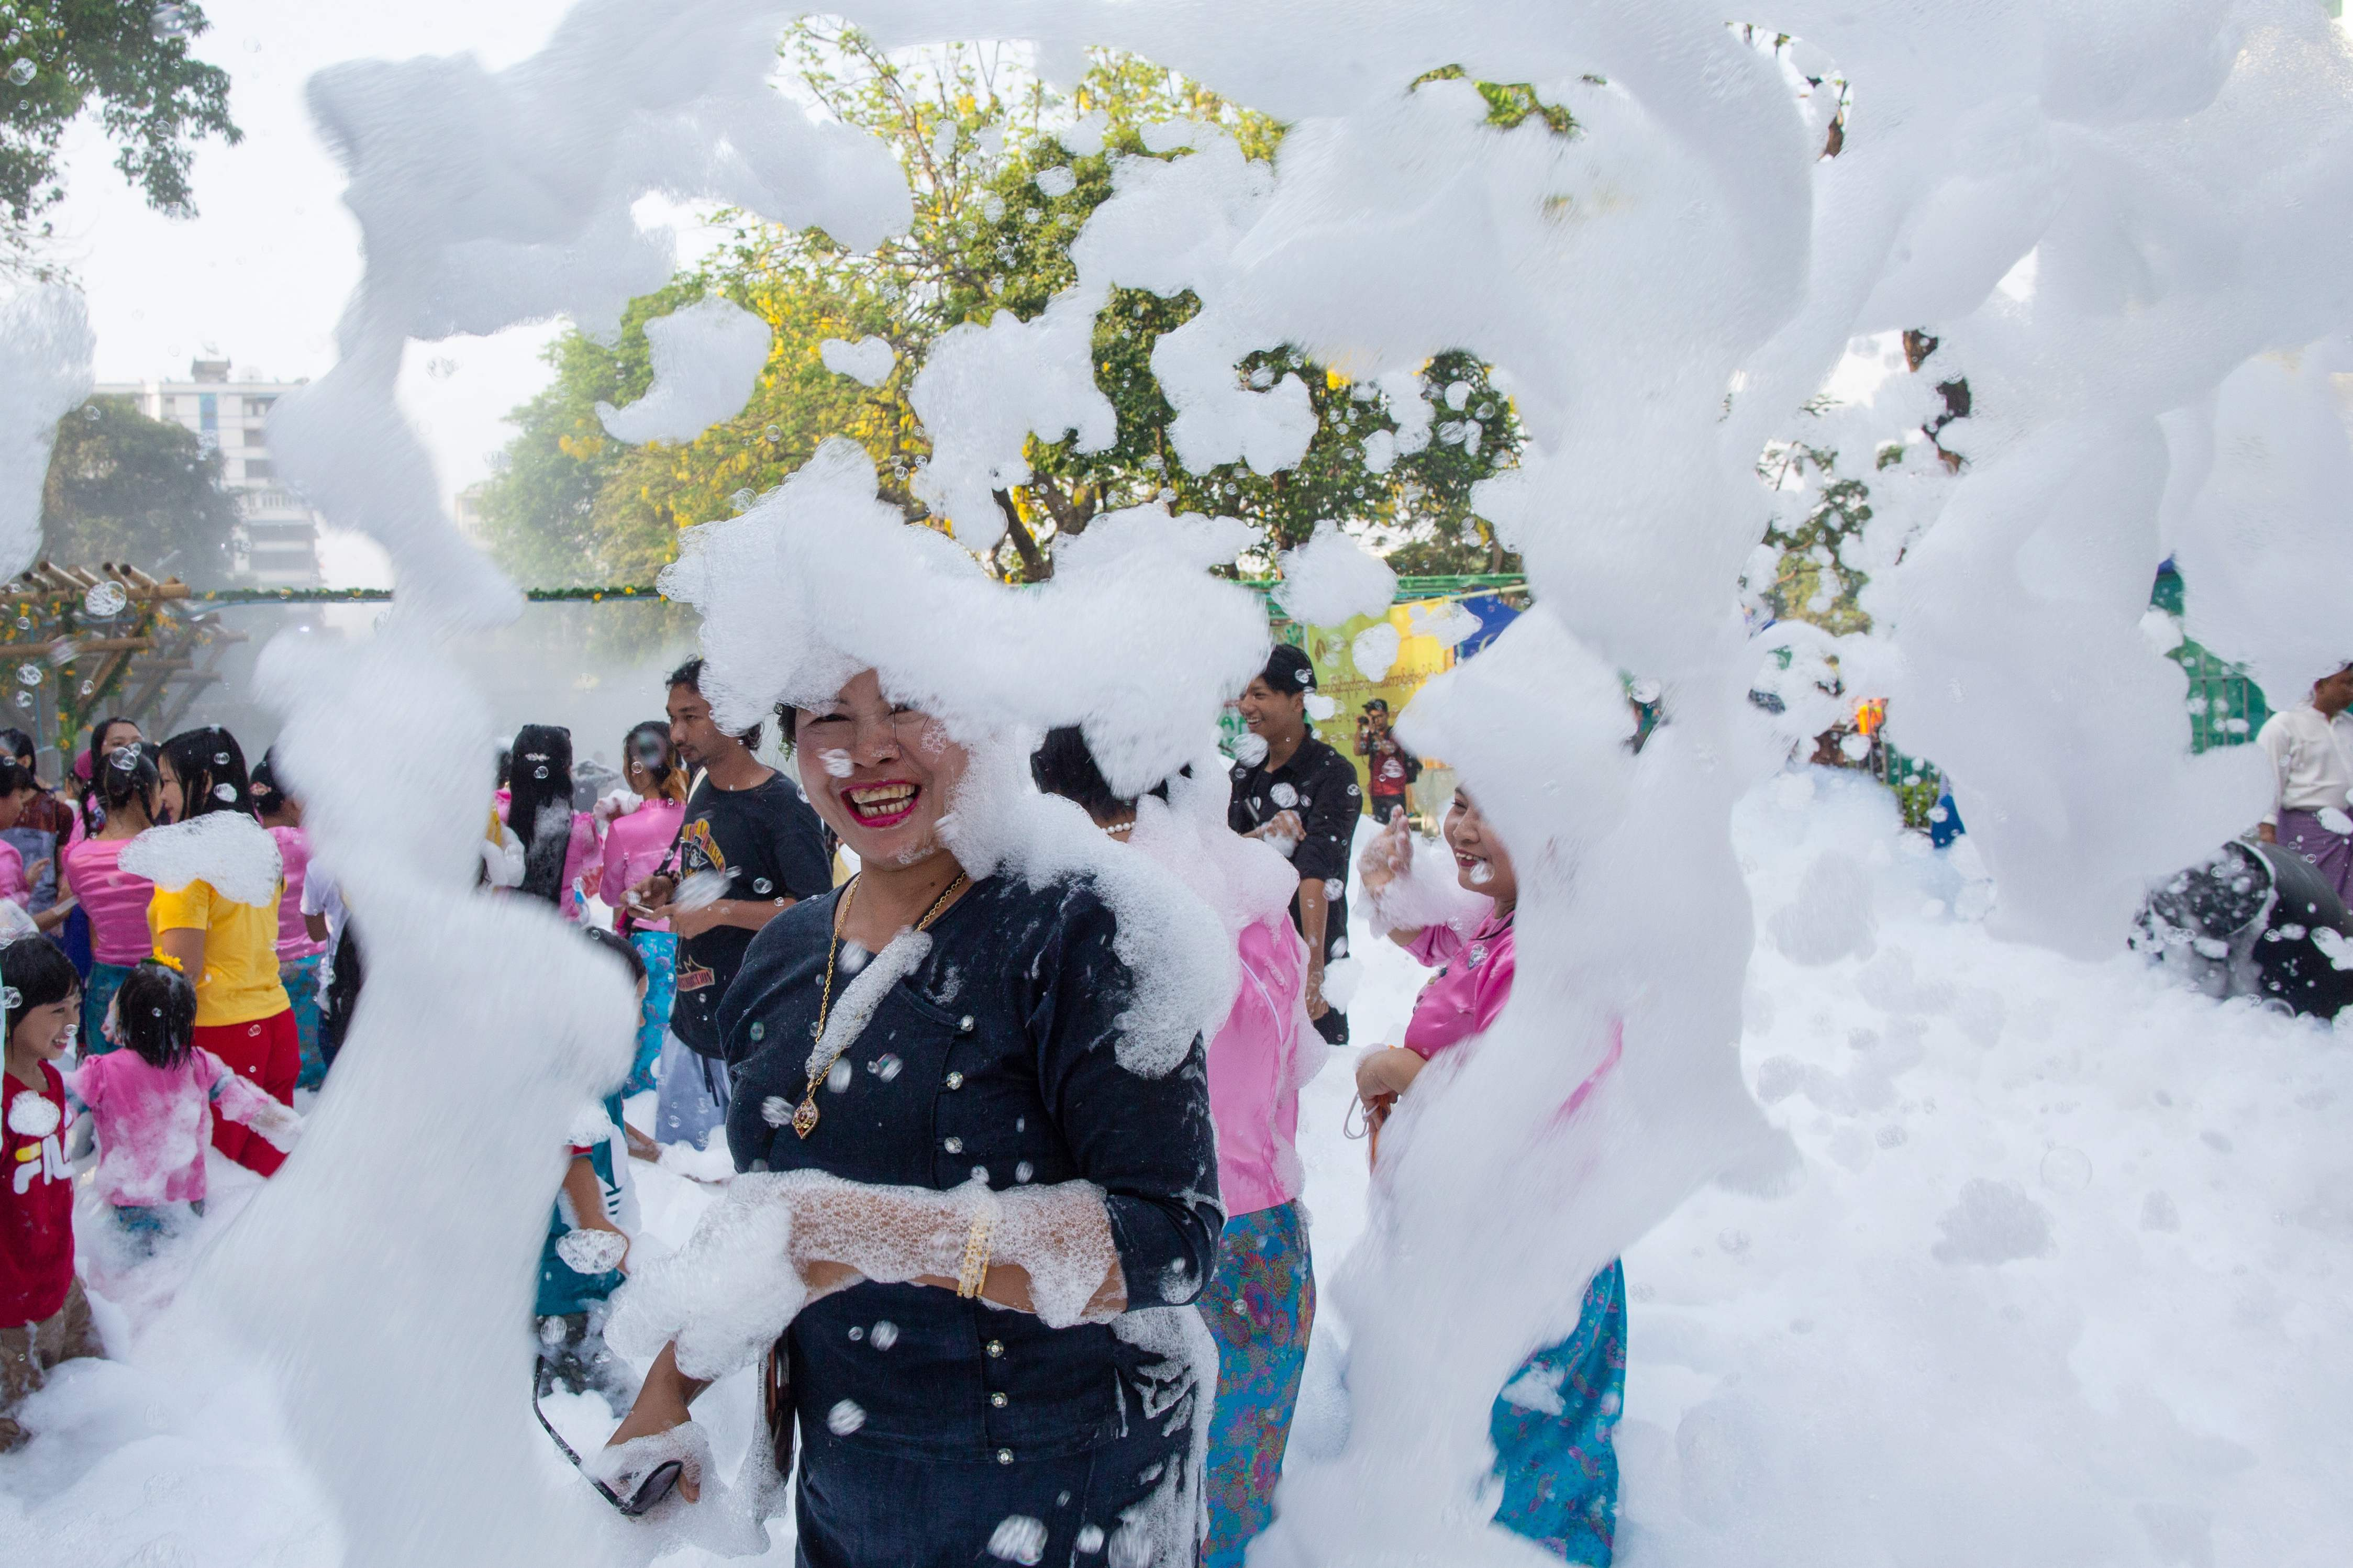 A woman smiles as she is covered in soap suds during celebrations for the Thingyan festival, also known as the Buddhist New Year, in Yangon, Myanmar on April 13, 2019.